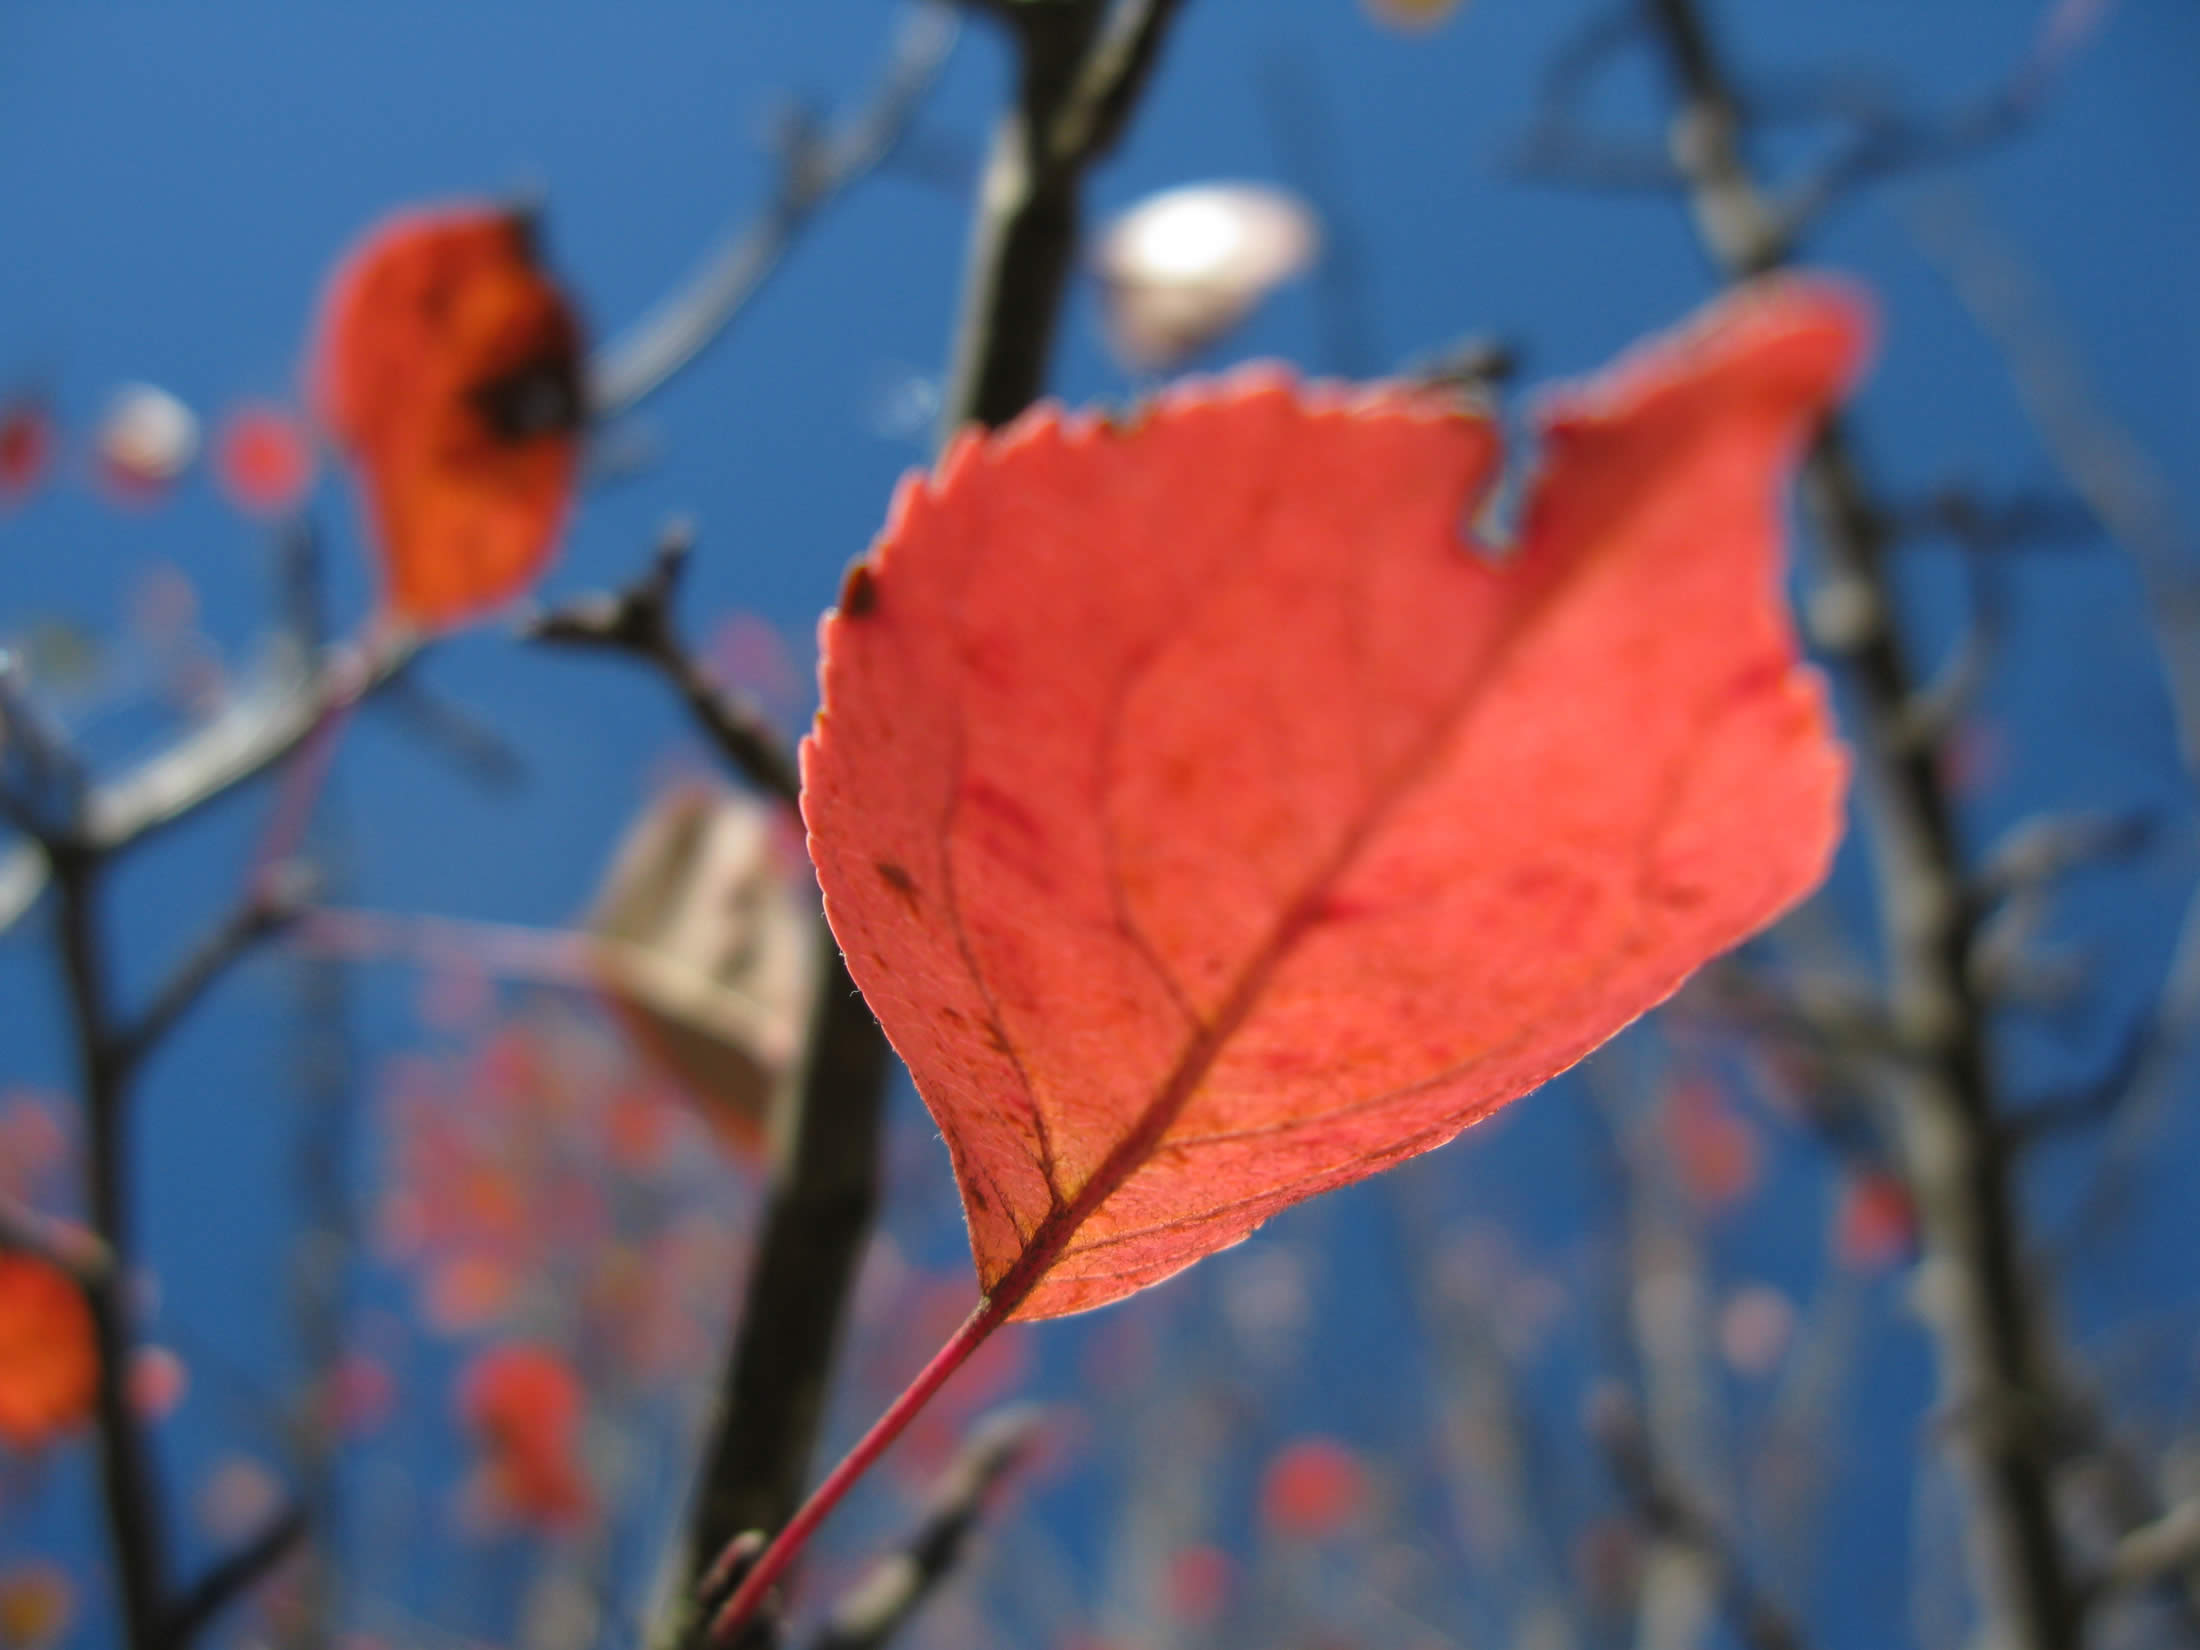 red crab apple tree leaves with blue sky, fall in zagori, greece